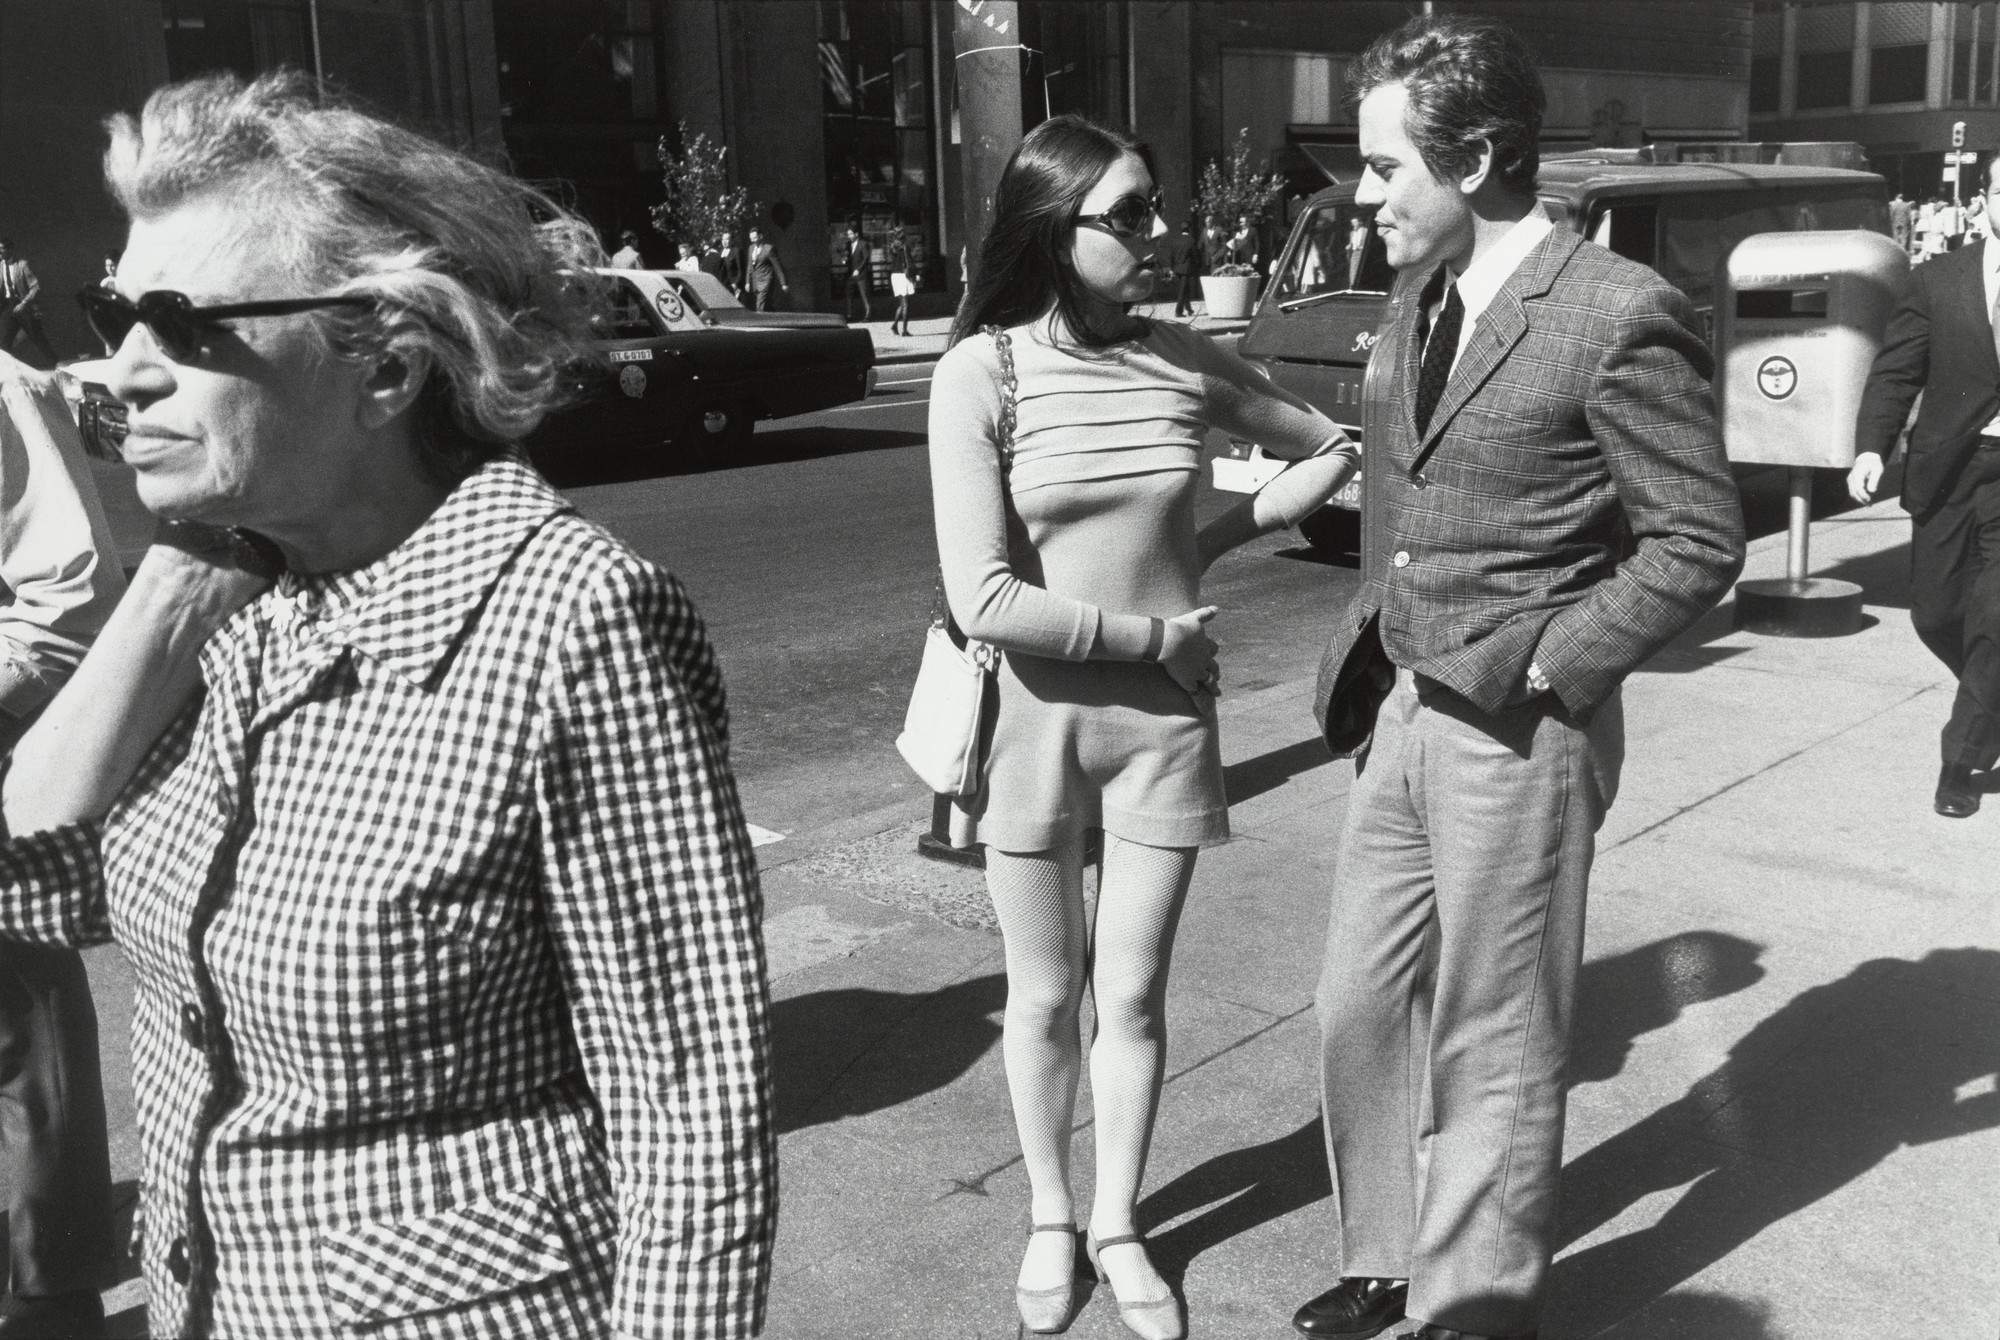 Garry Winogrand. Untitled from Women are Beautiful. 1968